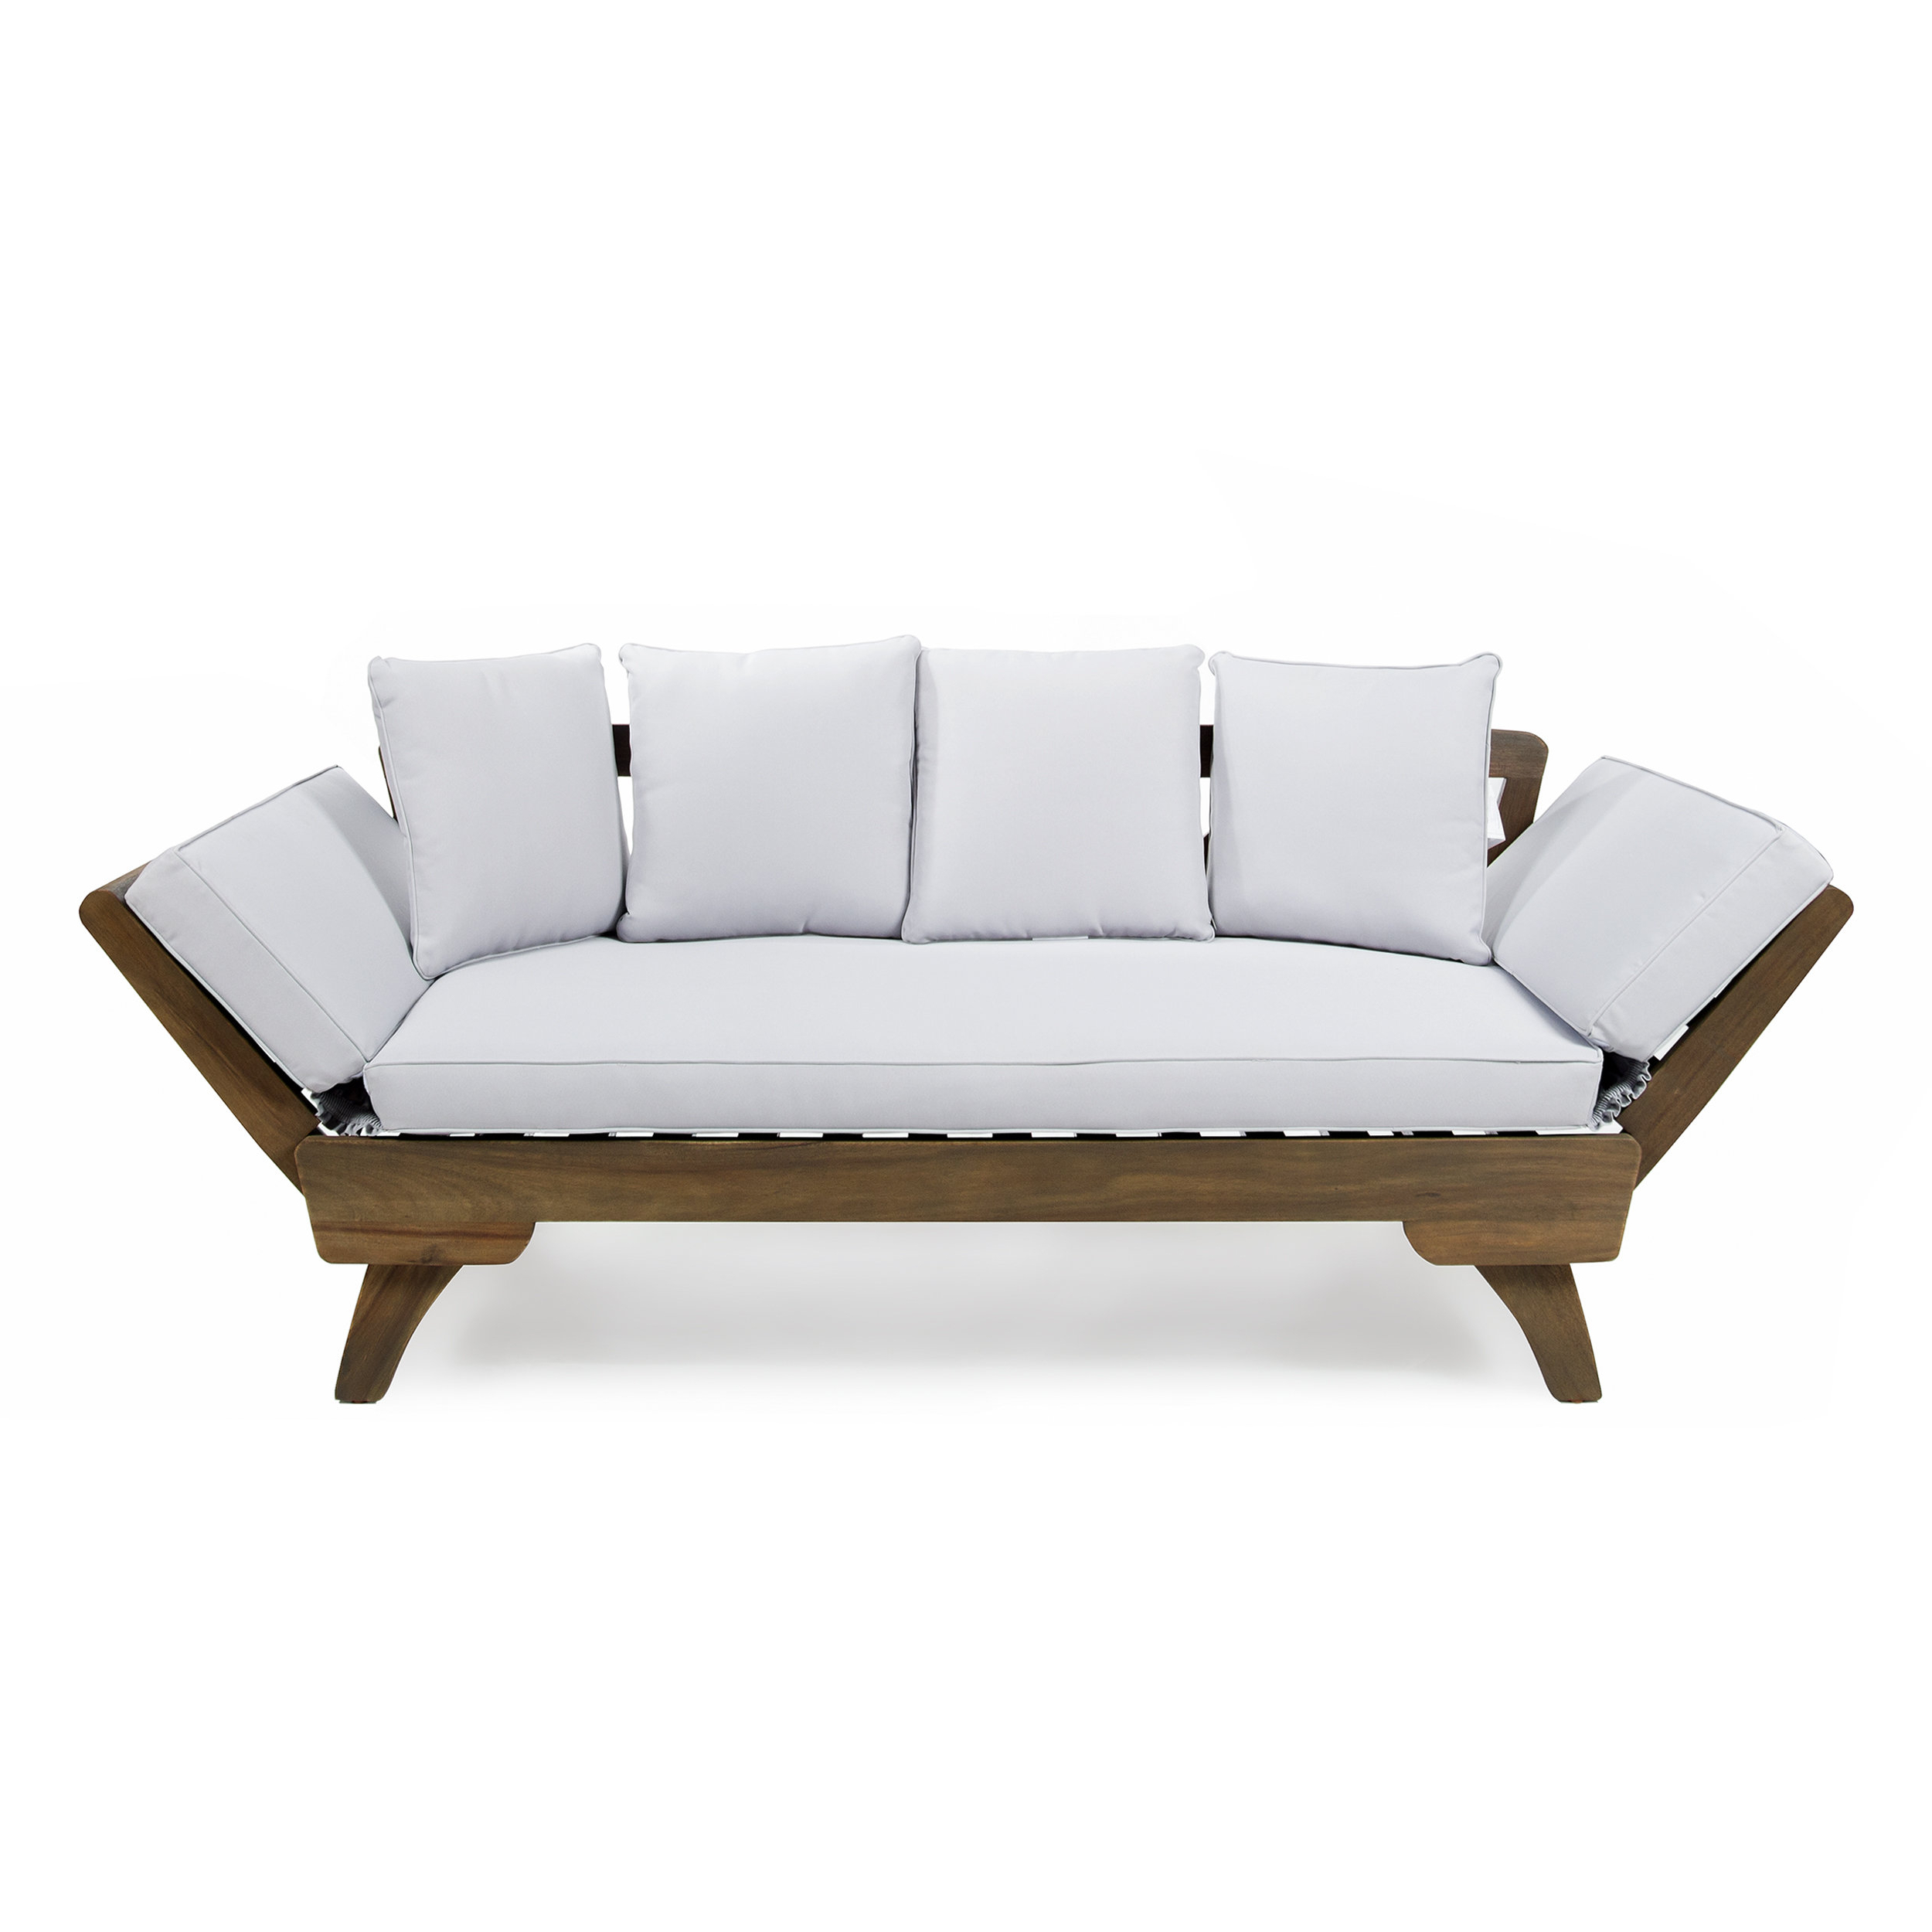 Clary Teak Lounge Patio Daybeds With Cushion Intended For Most Up To Date Union Rustic Ellanti Teak Patio Daybed With Cushions (View 17 of 20)